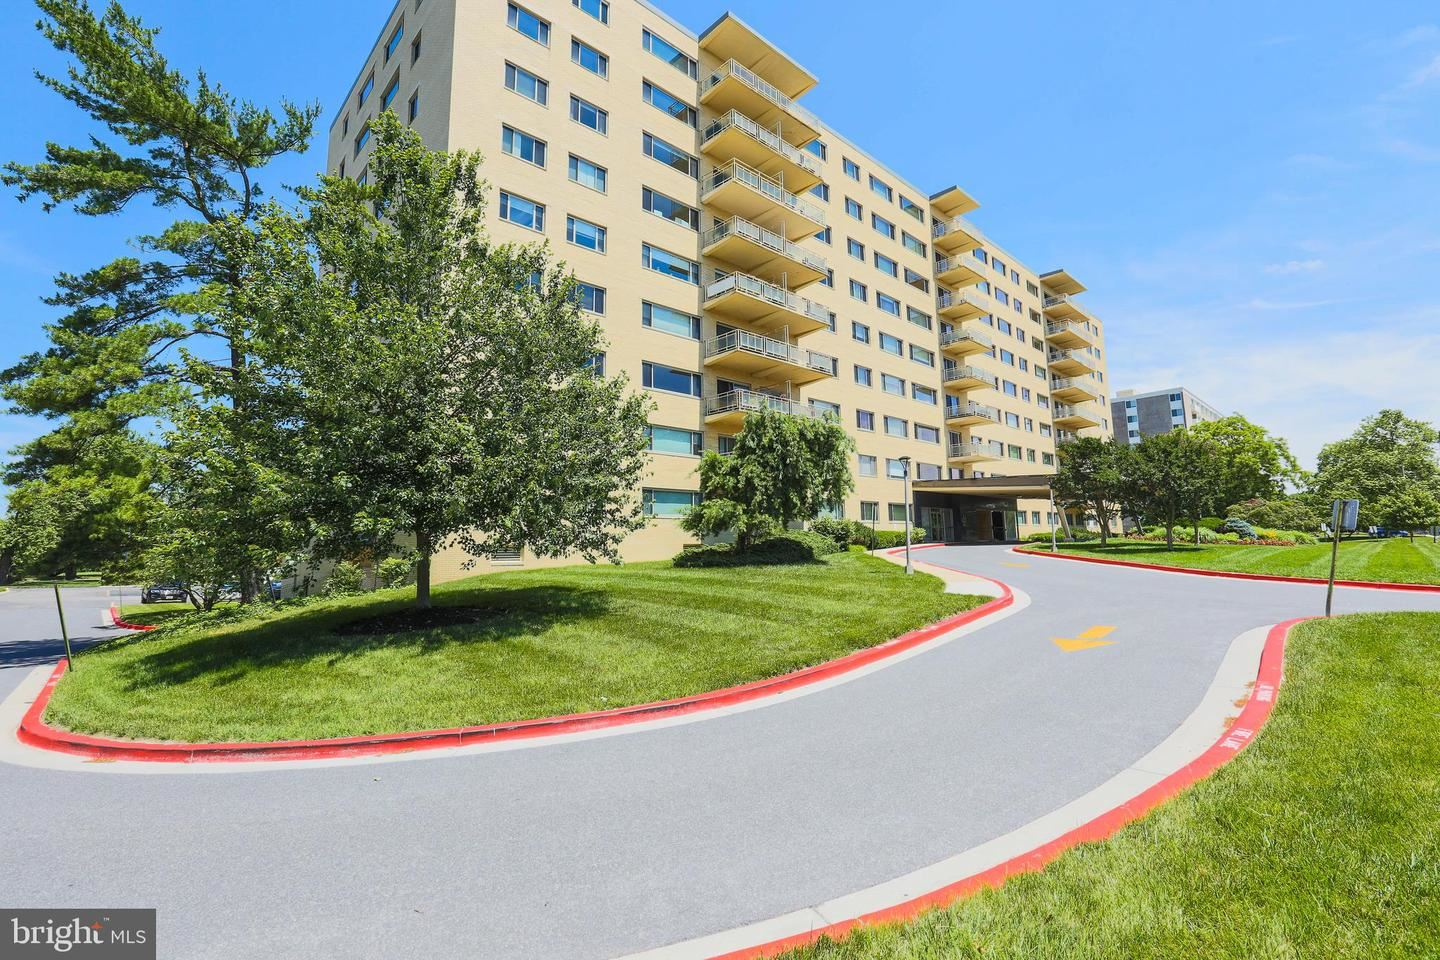 7121 PARK HEIGHTS AVE #808, Baltimore, MD 21215 - MLS#: MDBA462036